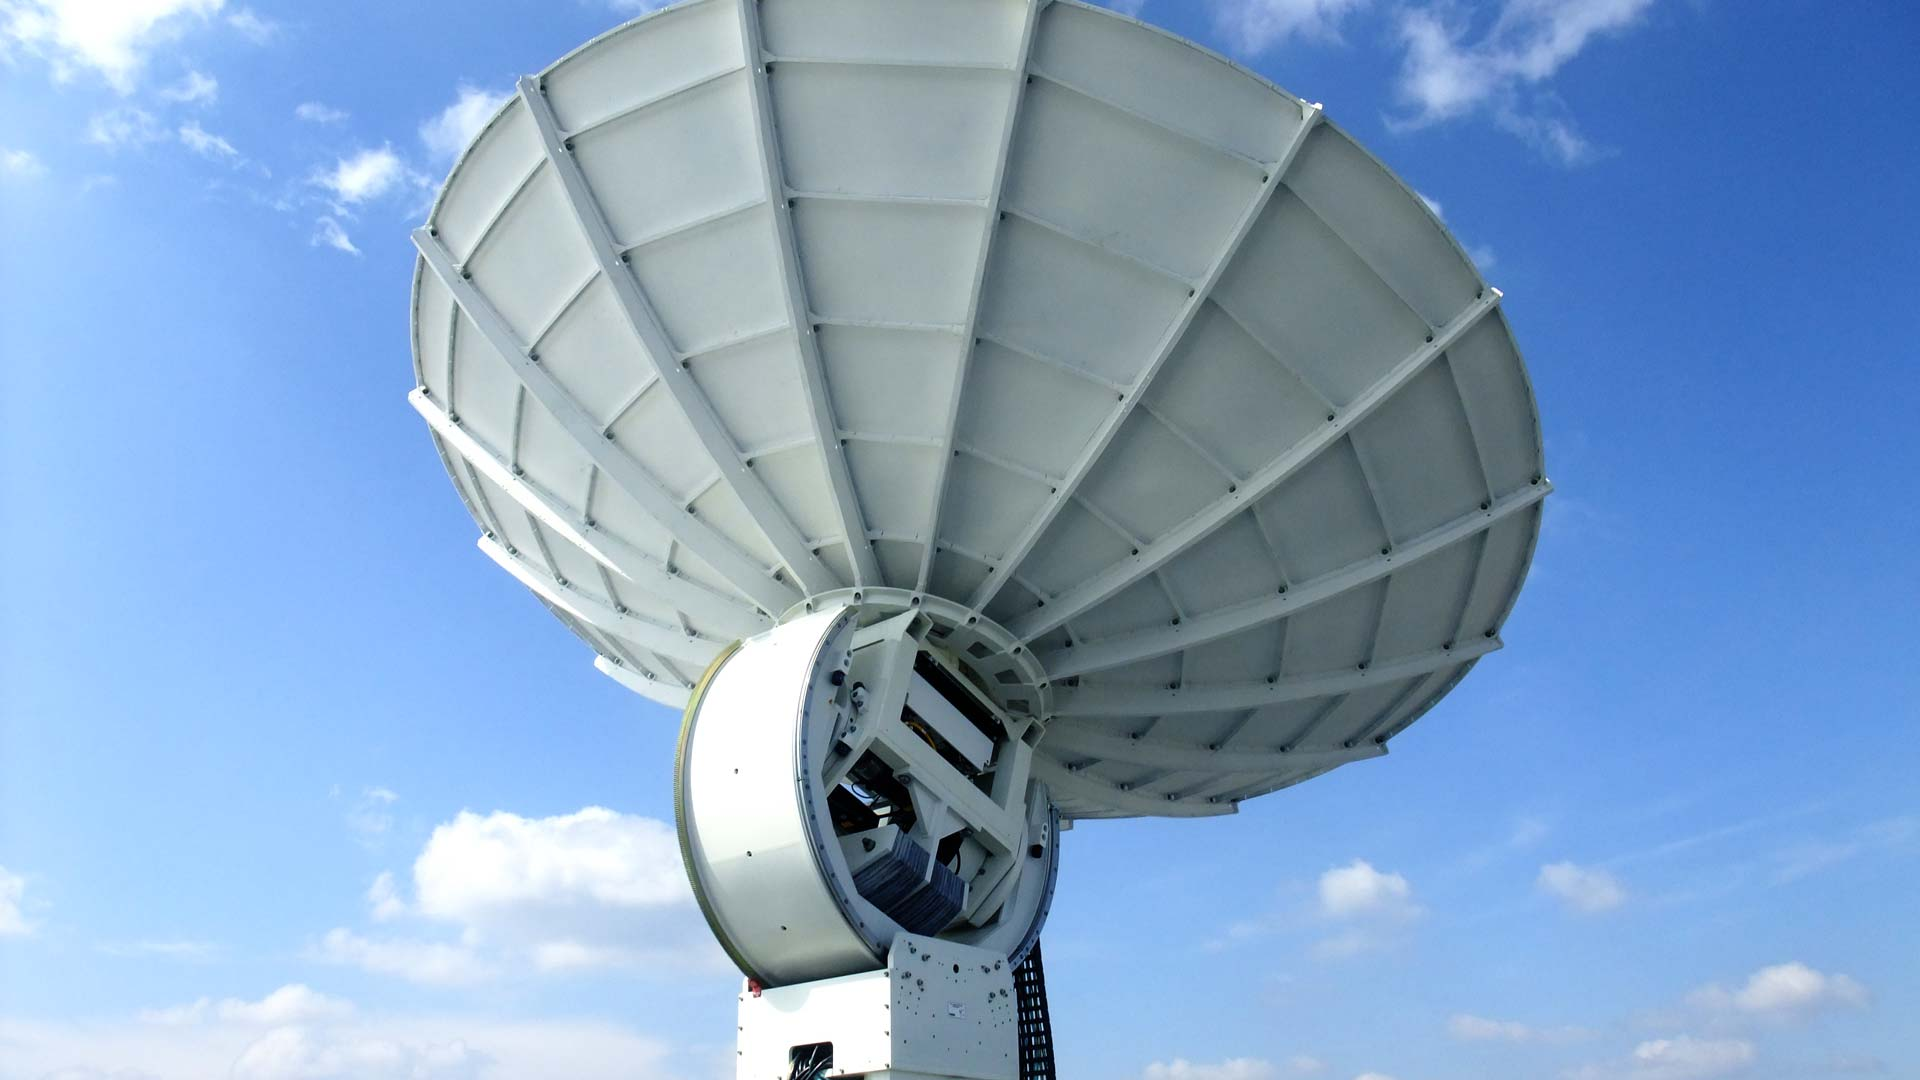 European Space Imaging's antenna at the Direct Access Facility